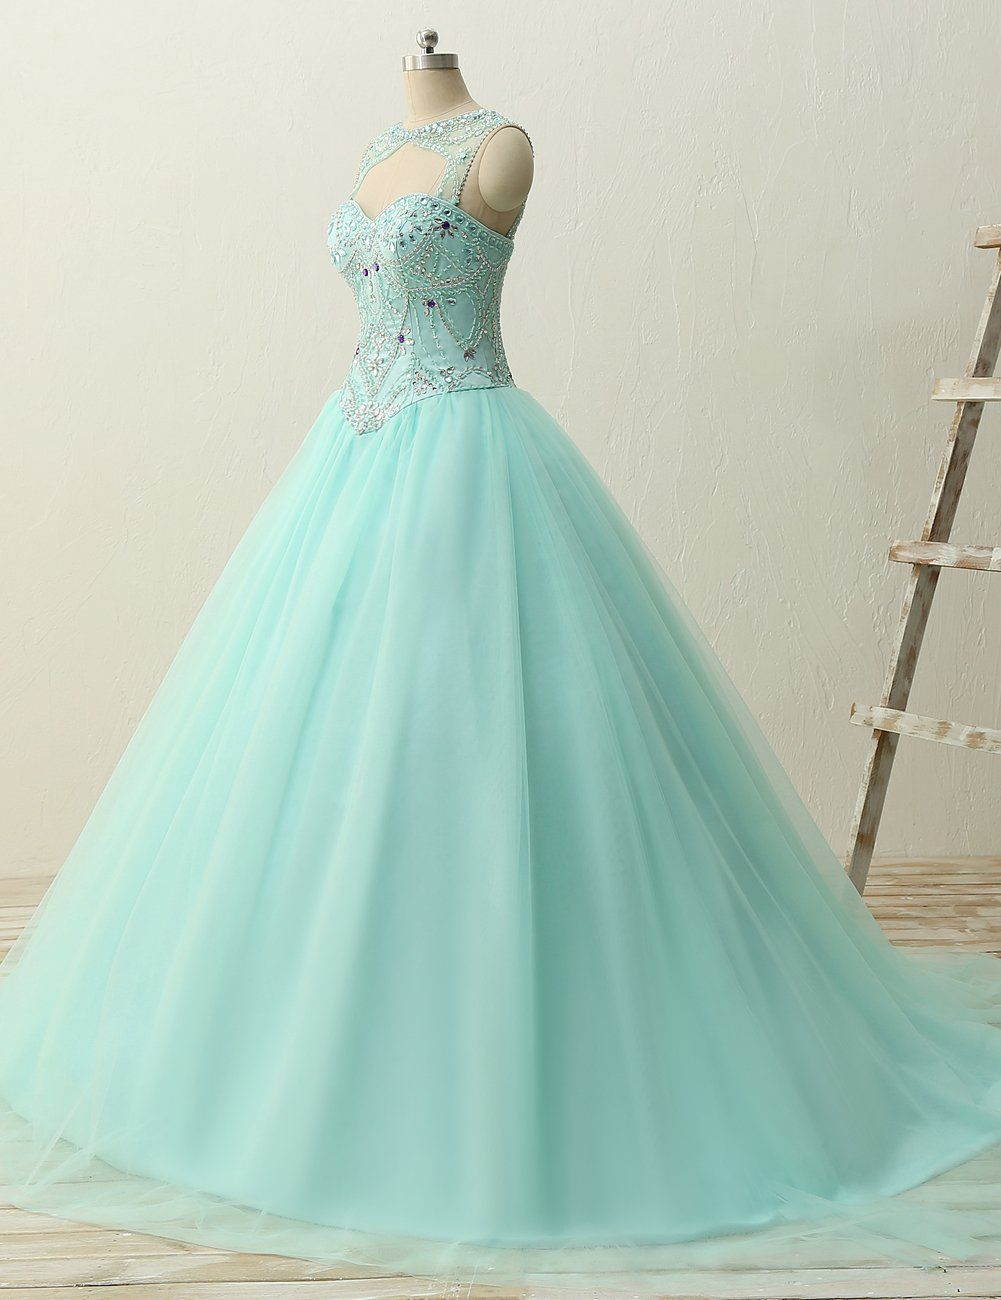 Jaeden ball gown quinceanera dresses beading tulle long prom dress